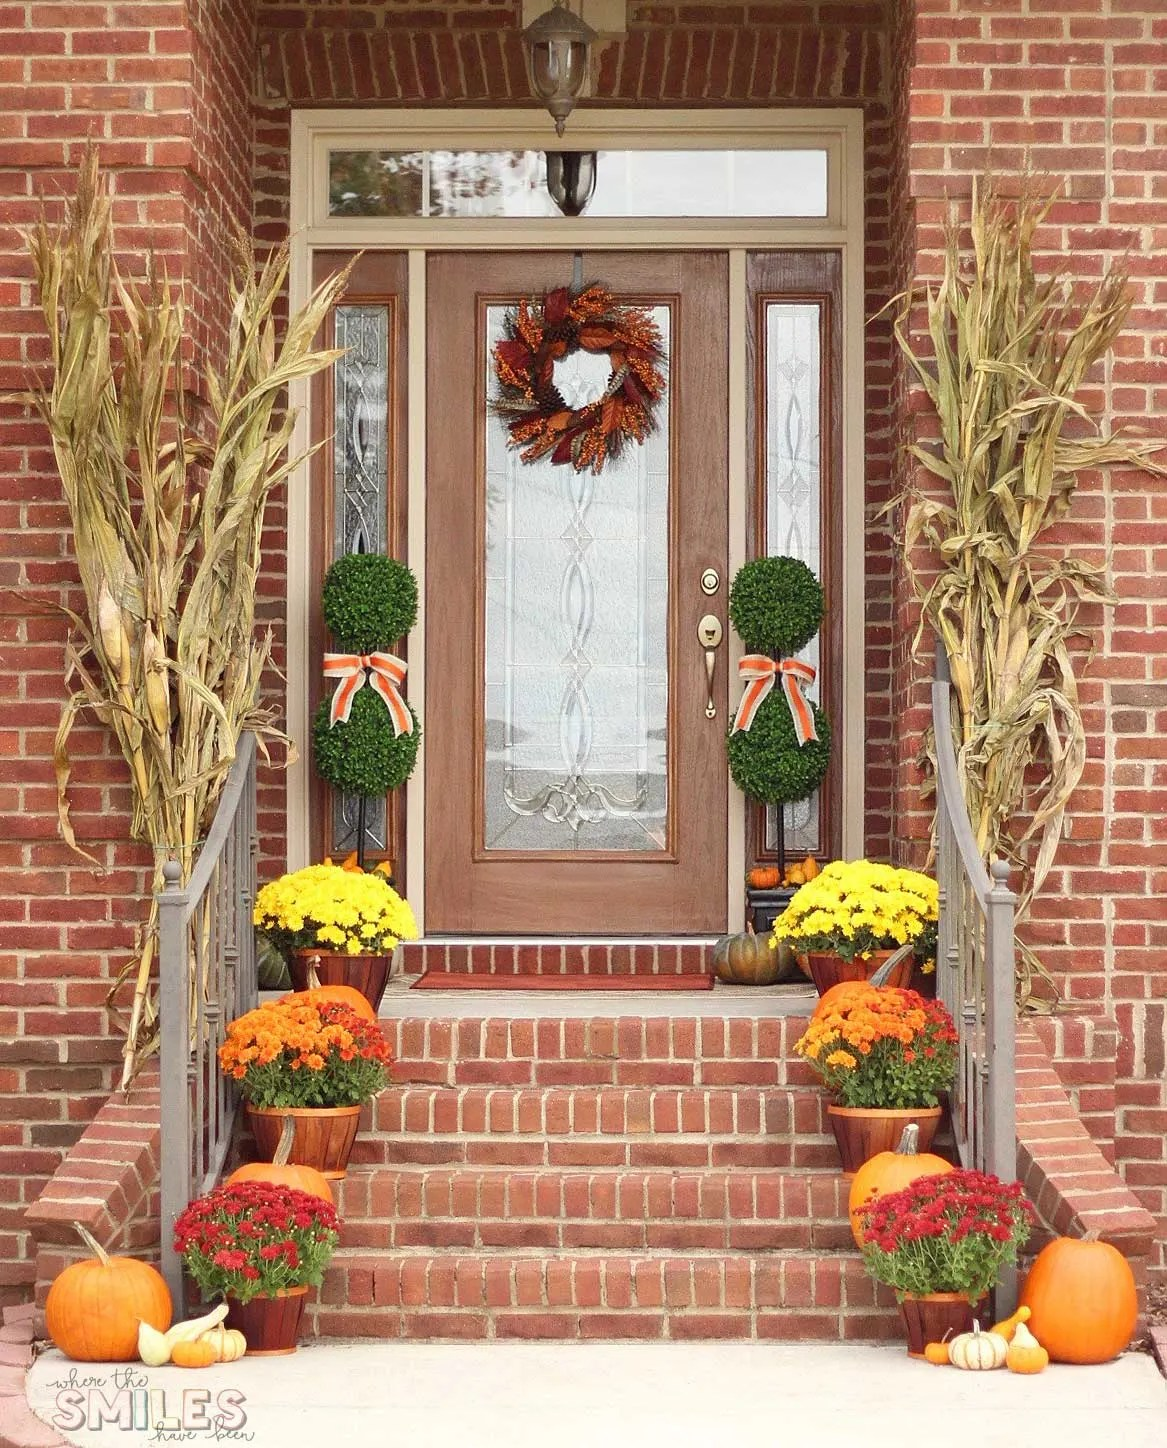 Porch Pictures For Design And Decorating Ideas: Fall Front Porch Decor: Our Happy Harvest At Home